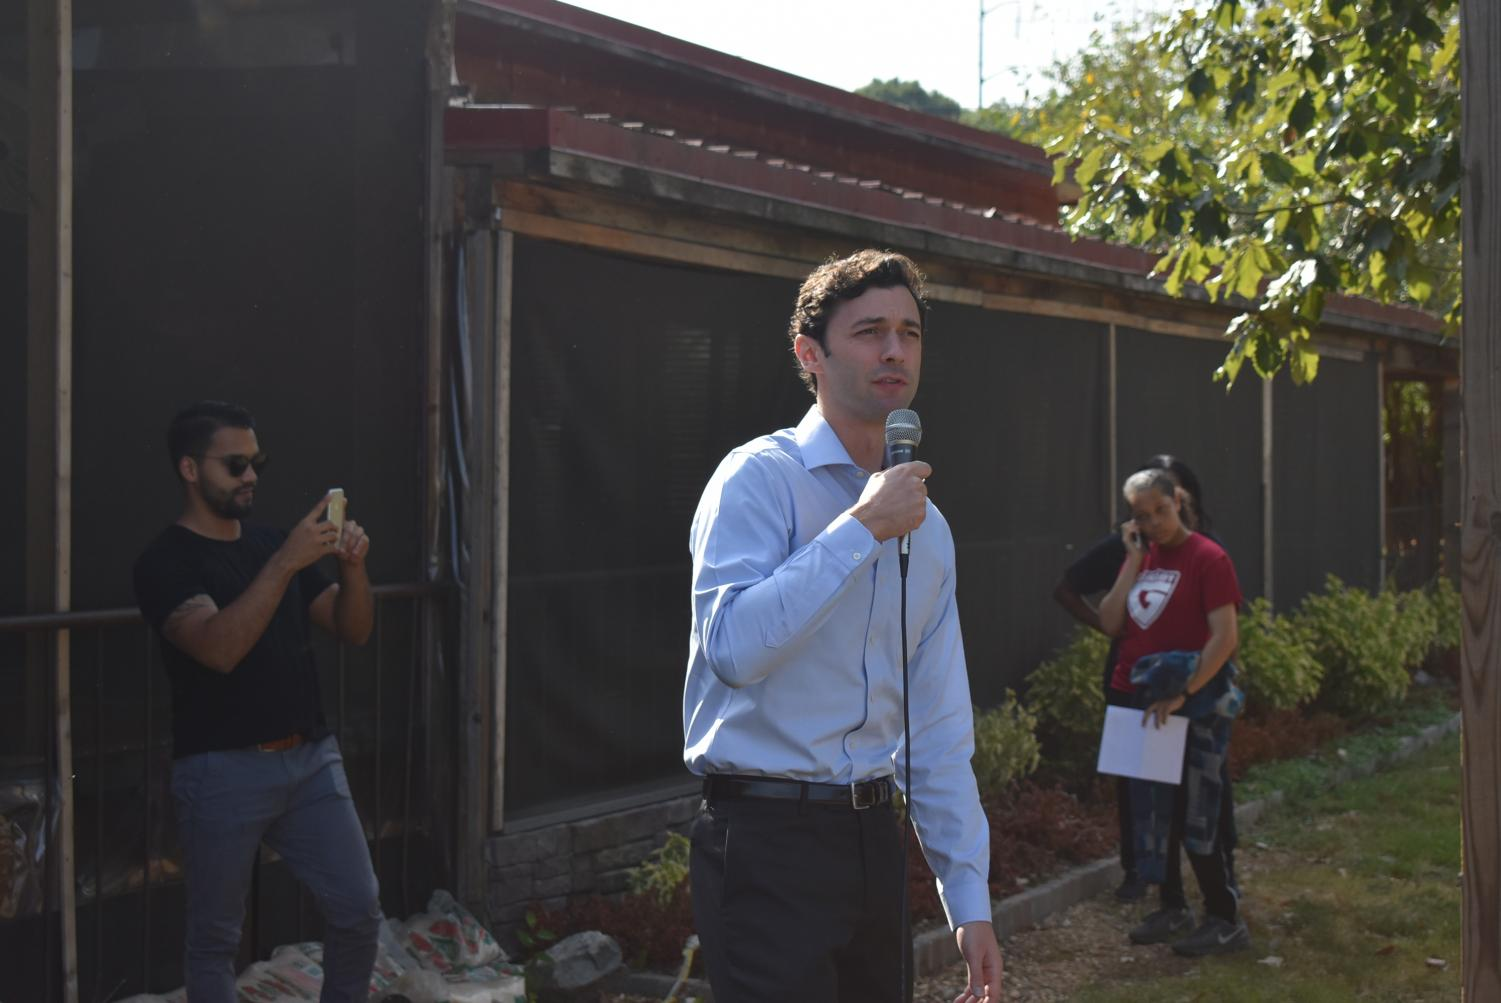 US+Senate+candidate%2C+Jon+Ossoff%2C+came+to+speak+to+Grady+students+about+climate+change+and+how+they+can+talk+to+their+representatives.